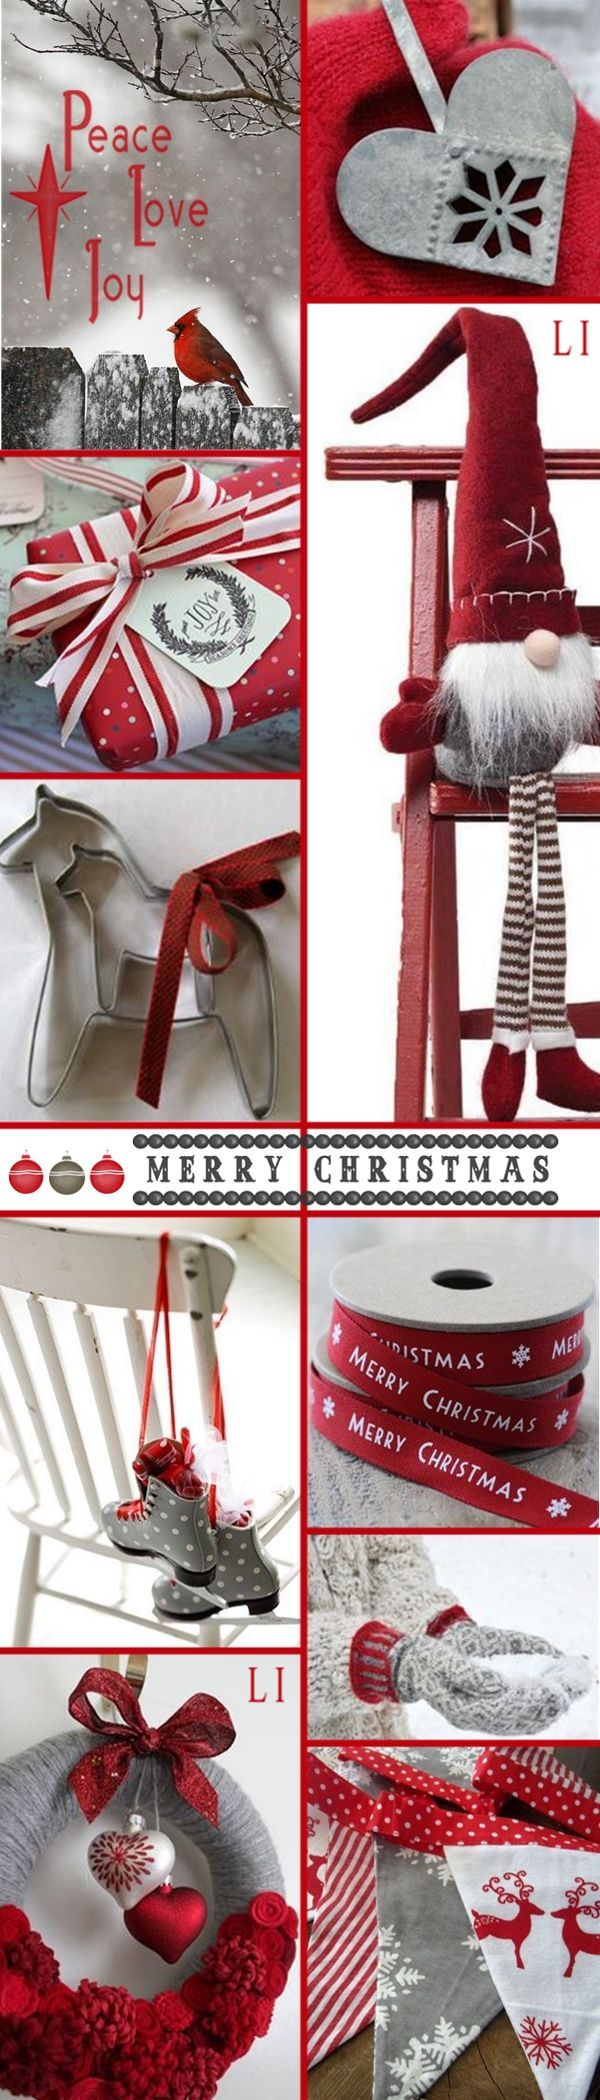 Christmas in red and silver gray